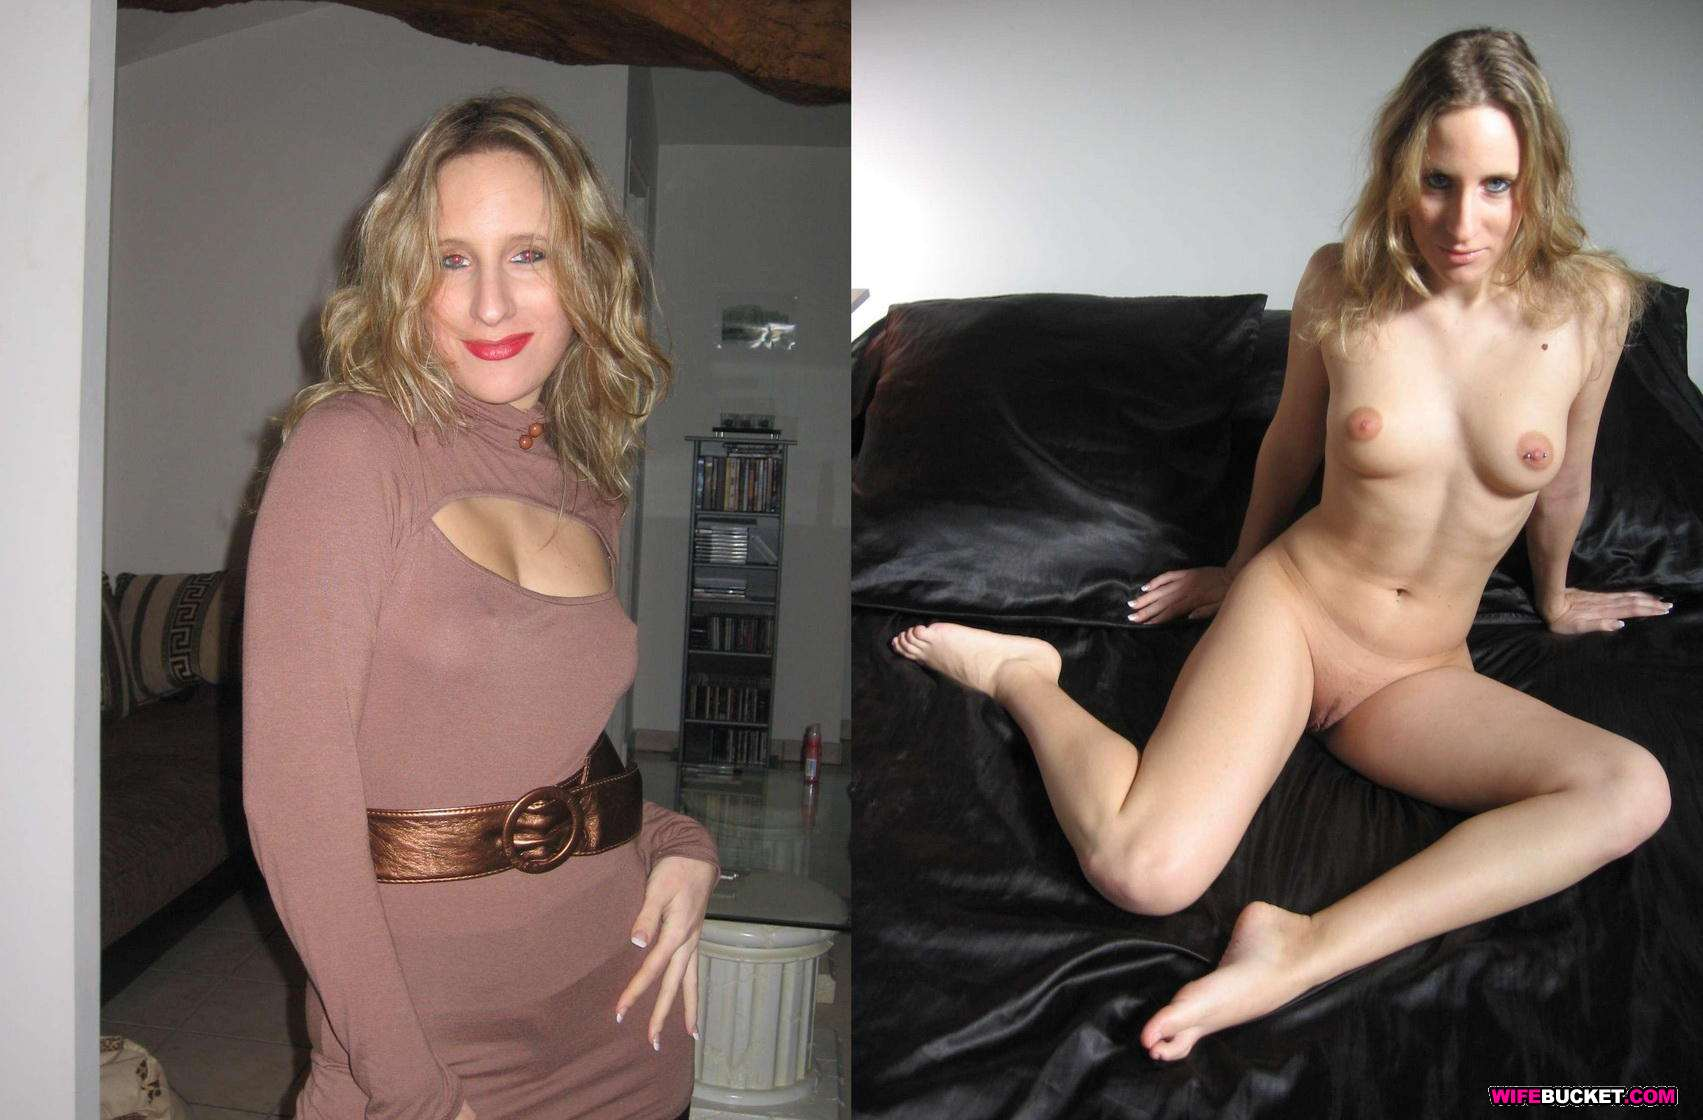 Before and after nude amature